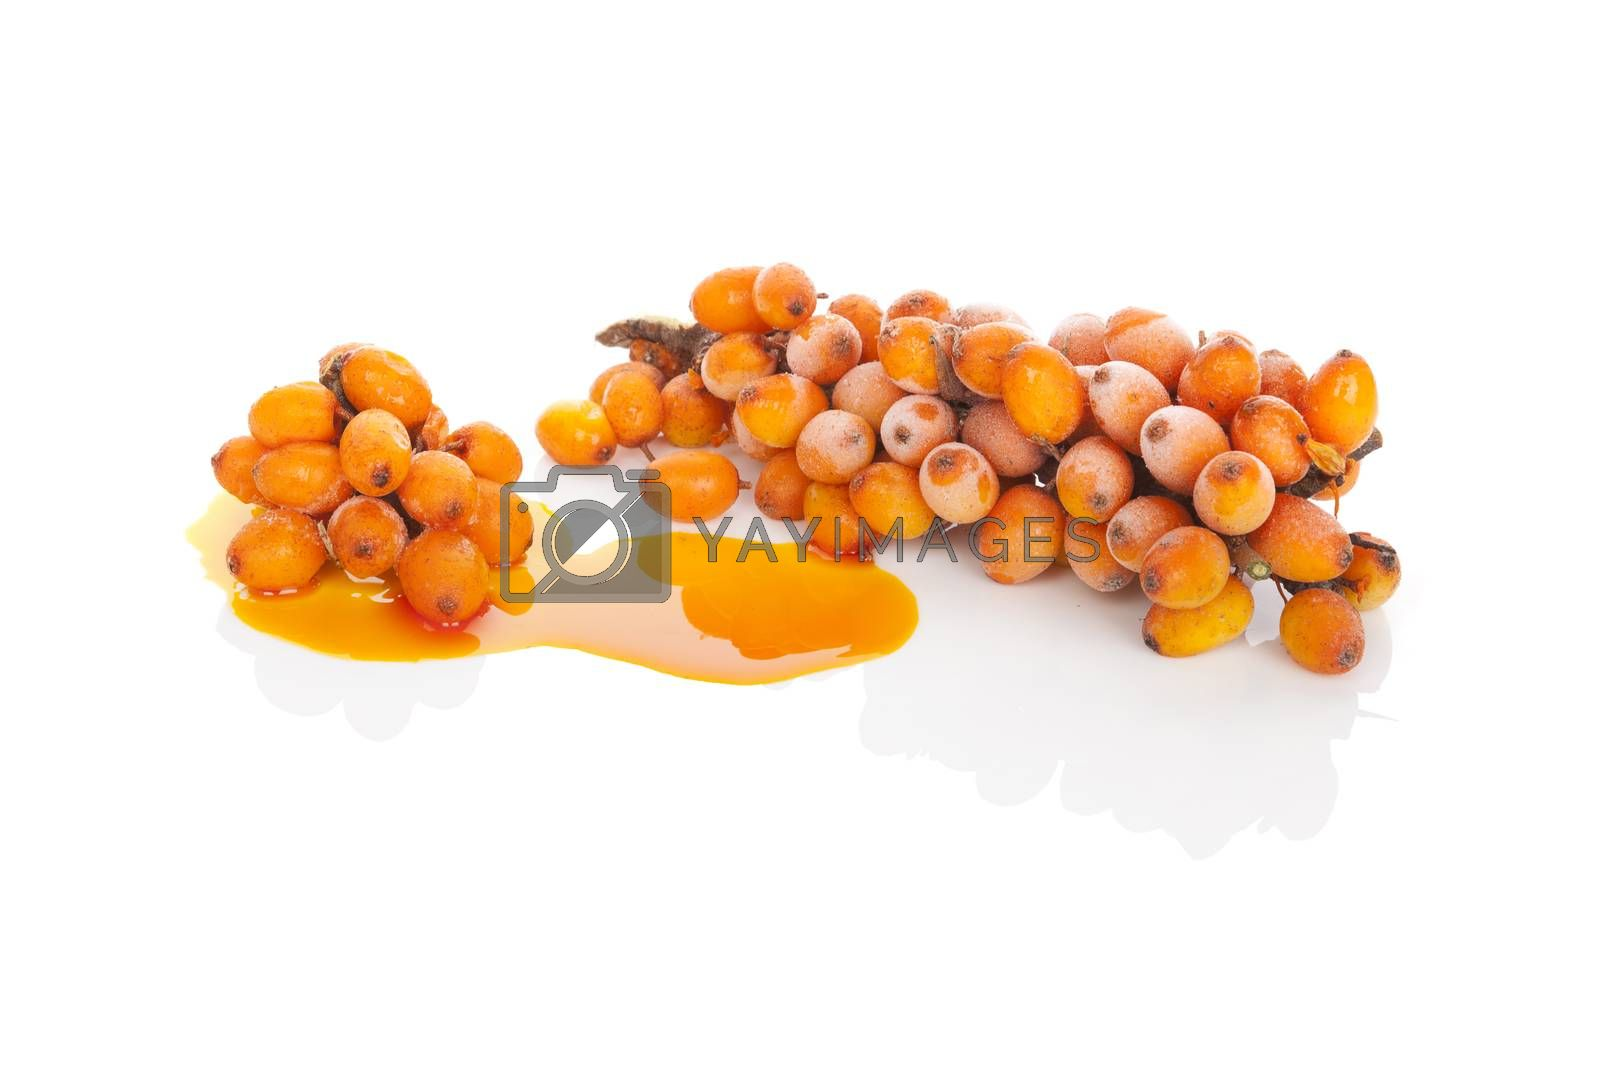 Sea buckthorn berries and sea buckthorn oil isolated on white background. Healthy fruit eating, natural detox.